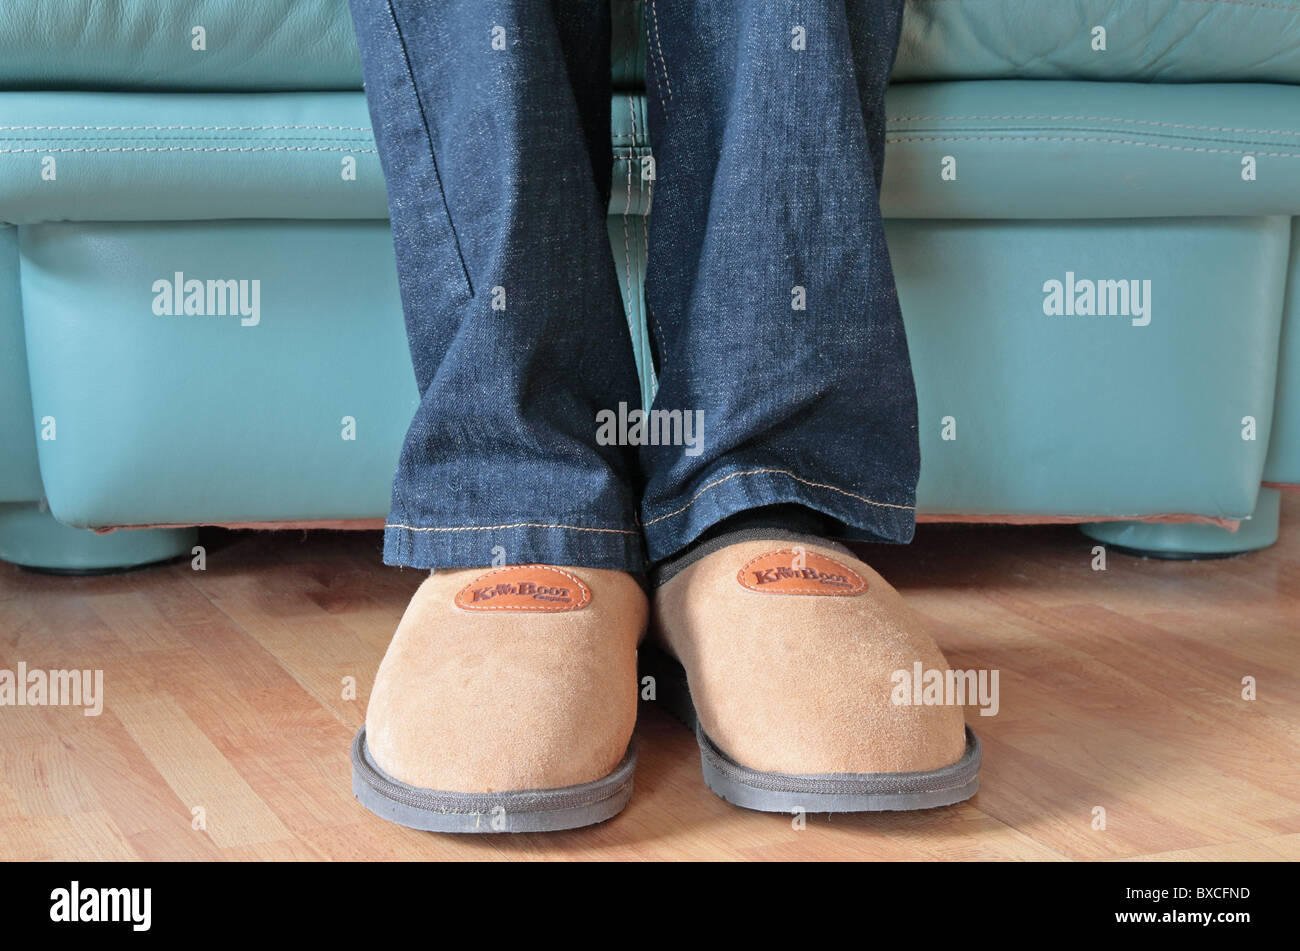 Man Wearing Sheepskin Comfy Slippers Whilst Sitting Down in a Leather Armchair MODEL RELEASED - Stock Image